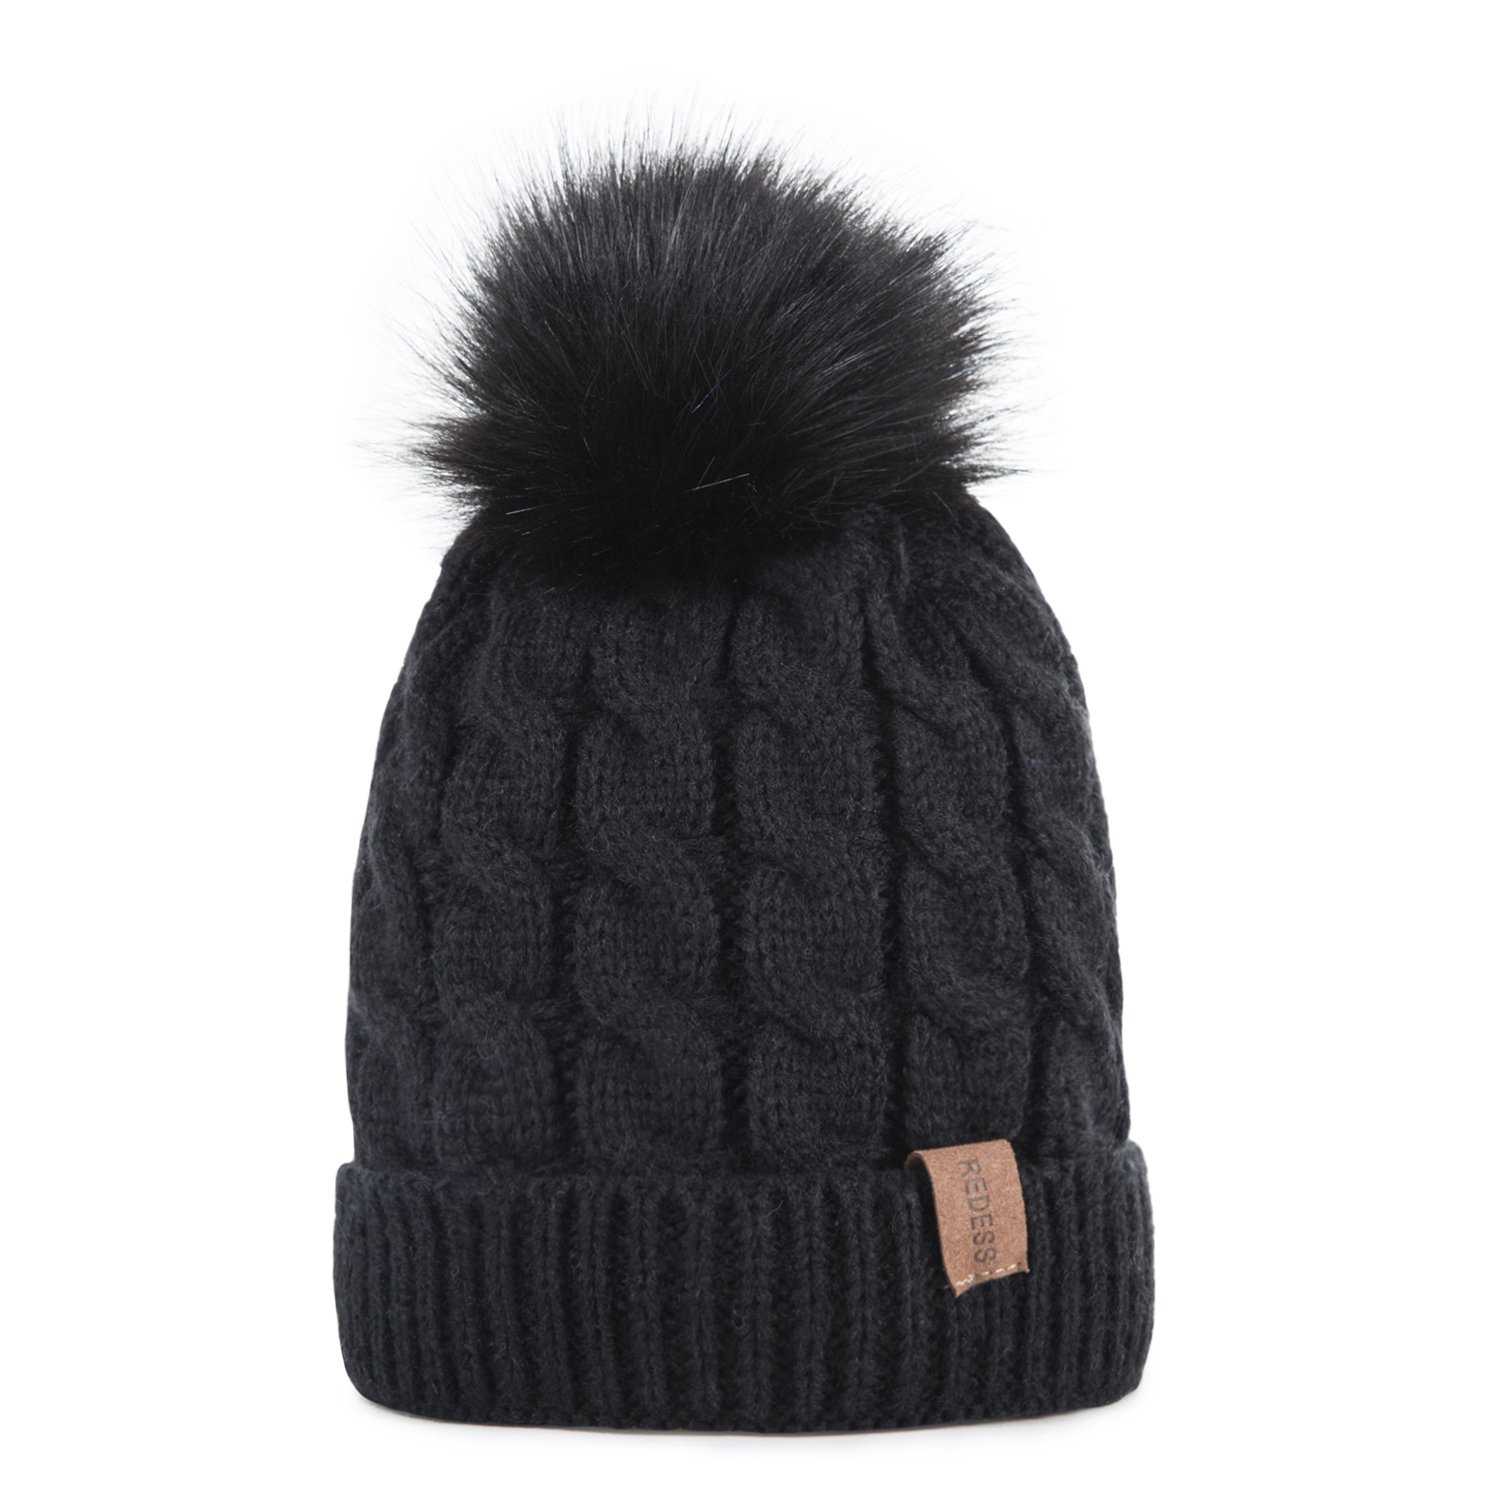 Kids Winter Warm Fleece Lined Hat, Baby Toddler Children's Beanie Pom Pom Knit Cap for Girls and Boys by REDESS (Black)